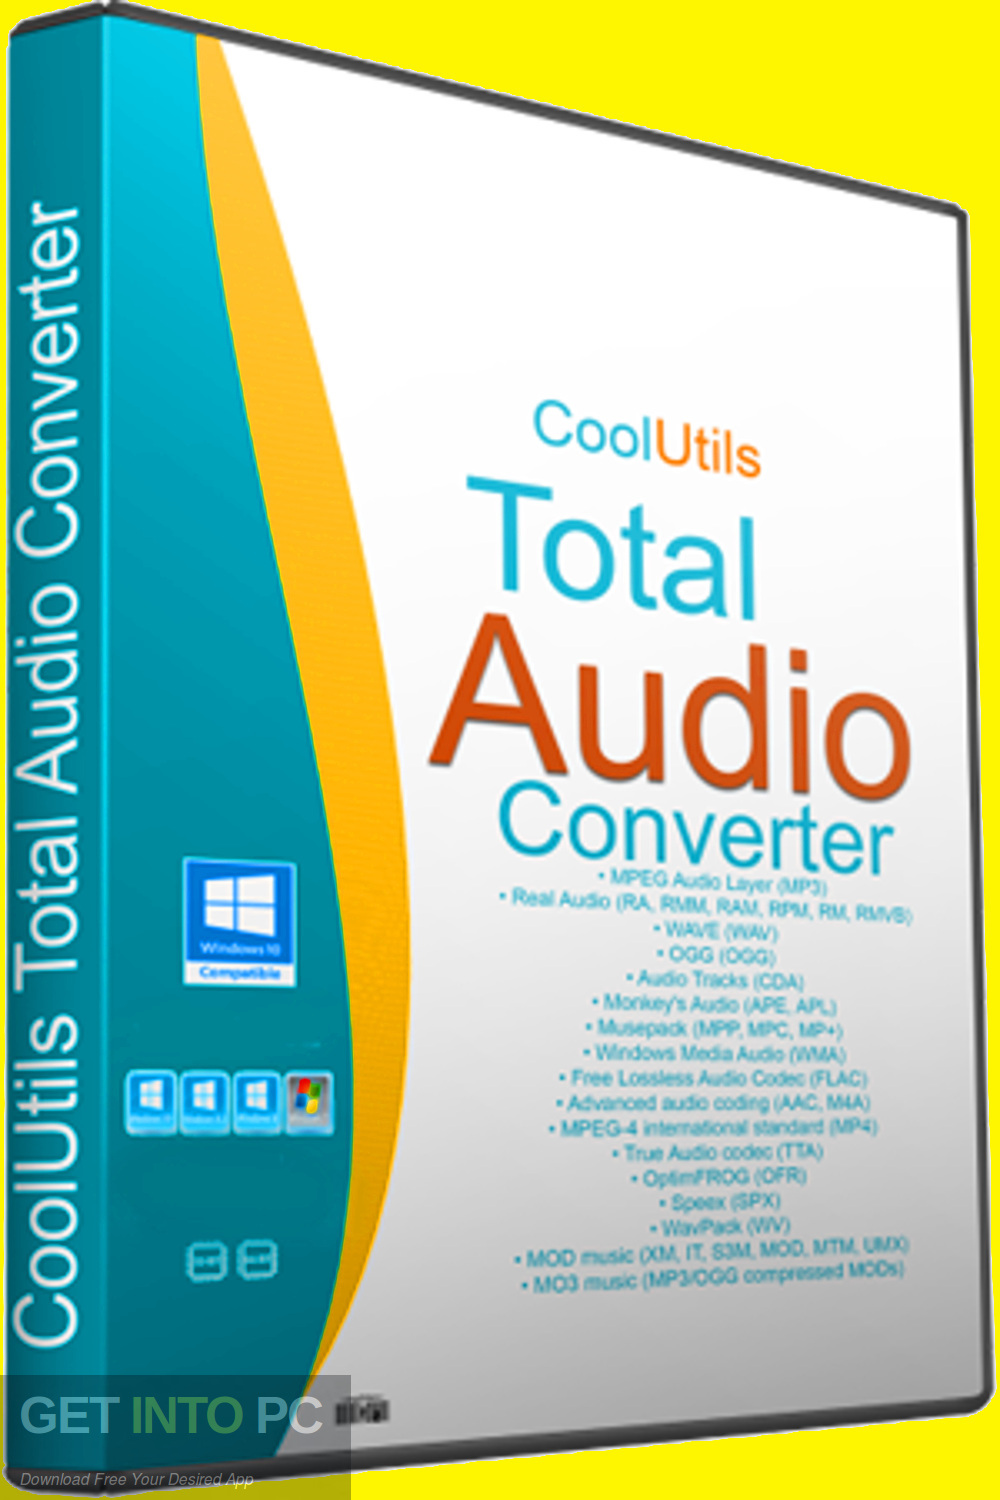 CoolUtils Total Audio Converter 2019 Free Download-GetintoPC.com